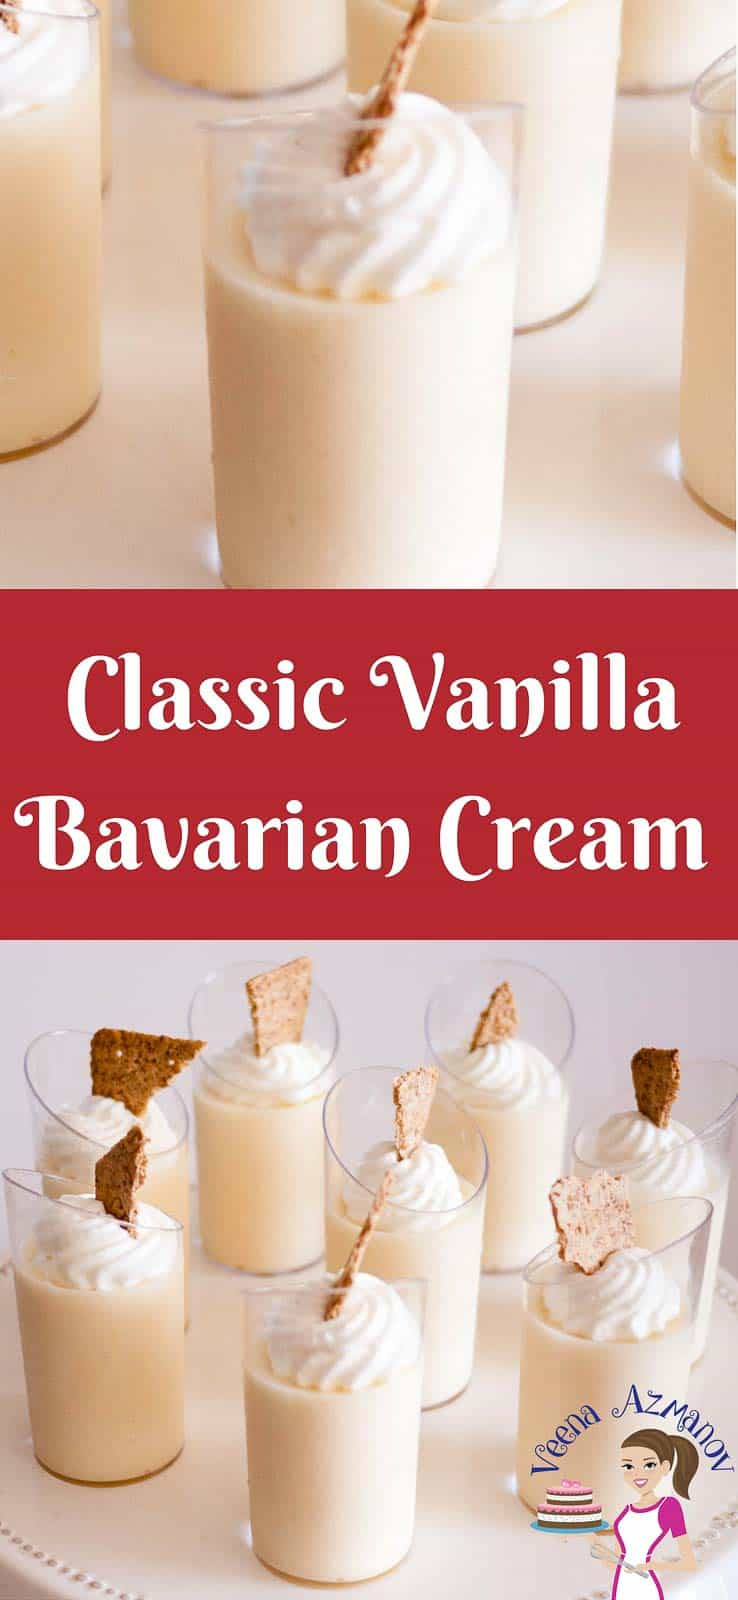 A classic French dessert that is delicious as exotic as it looks. A vanilla Bavarian Cream also called creme' Bavaria or just Bavarios is a custard based dessert made with vanilla pastry cream as a base. Infused with vanilla or liquor then lighted with fresh whipped cream. Simple, easy yet very impressive dessert that's perfect any time of the year.